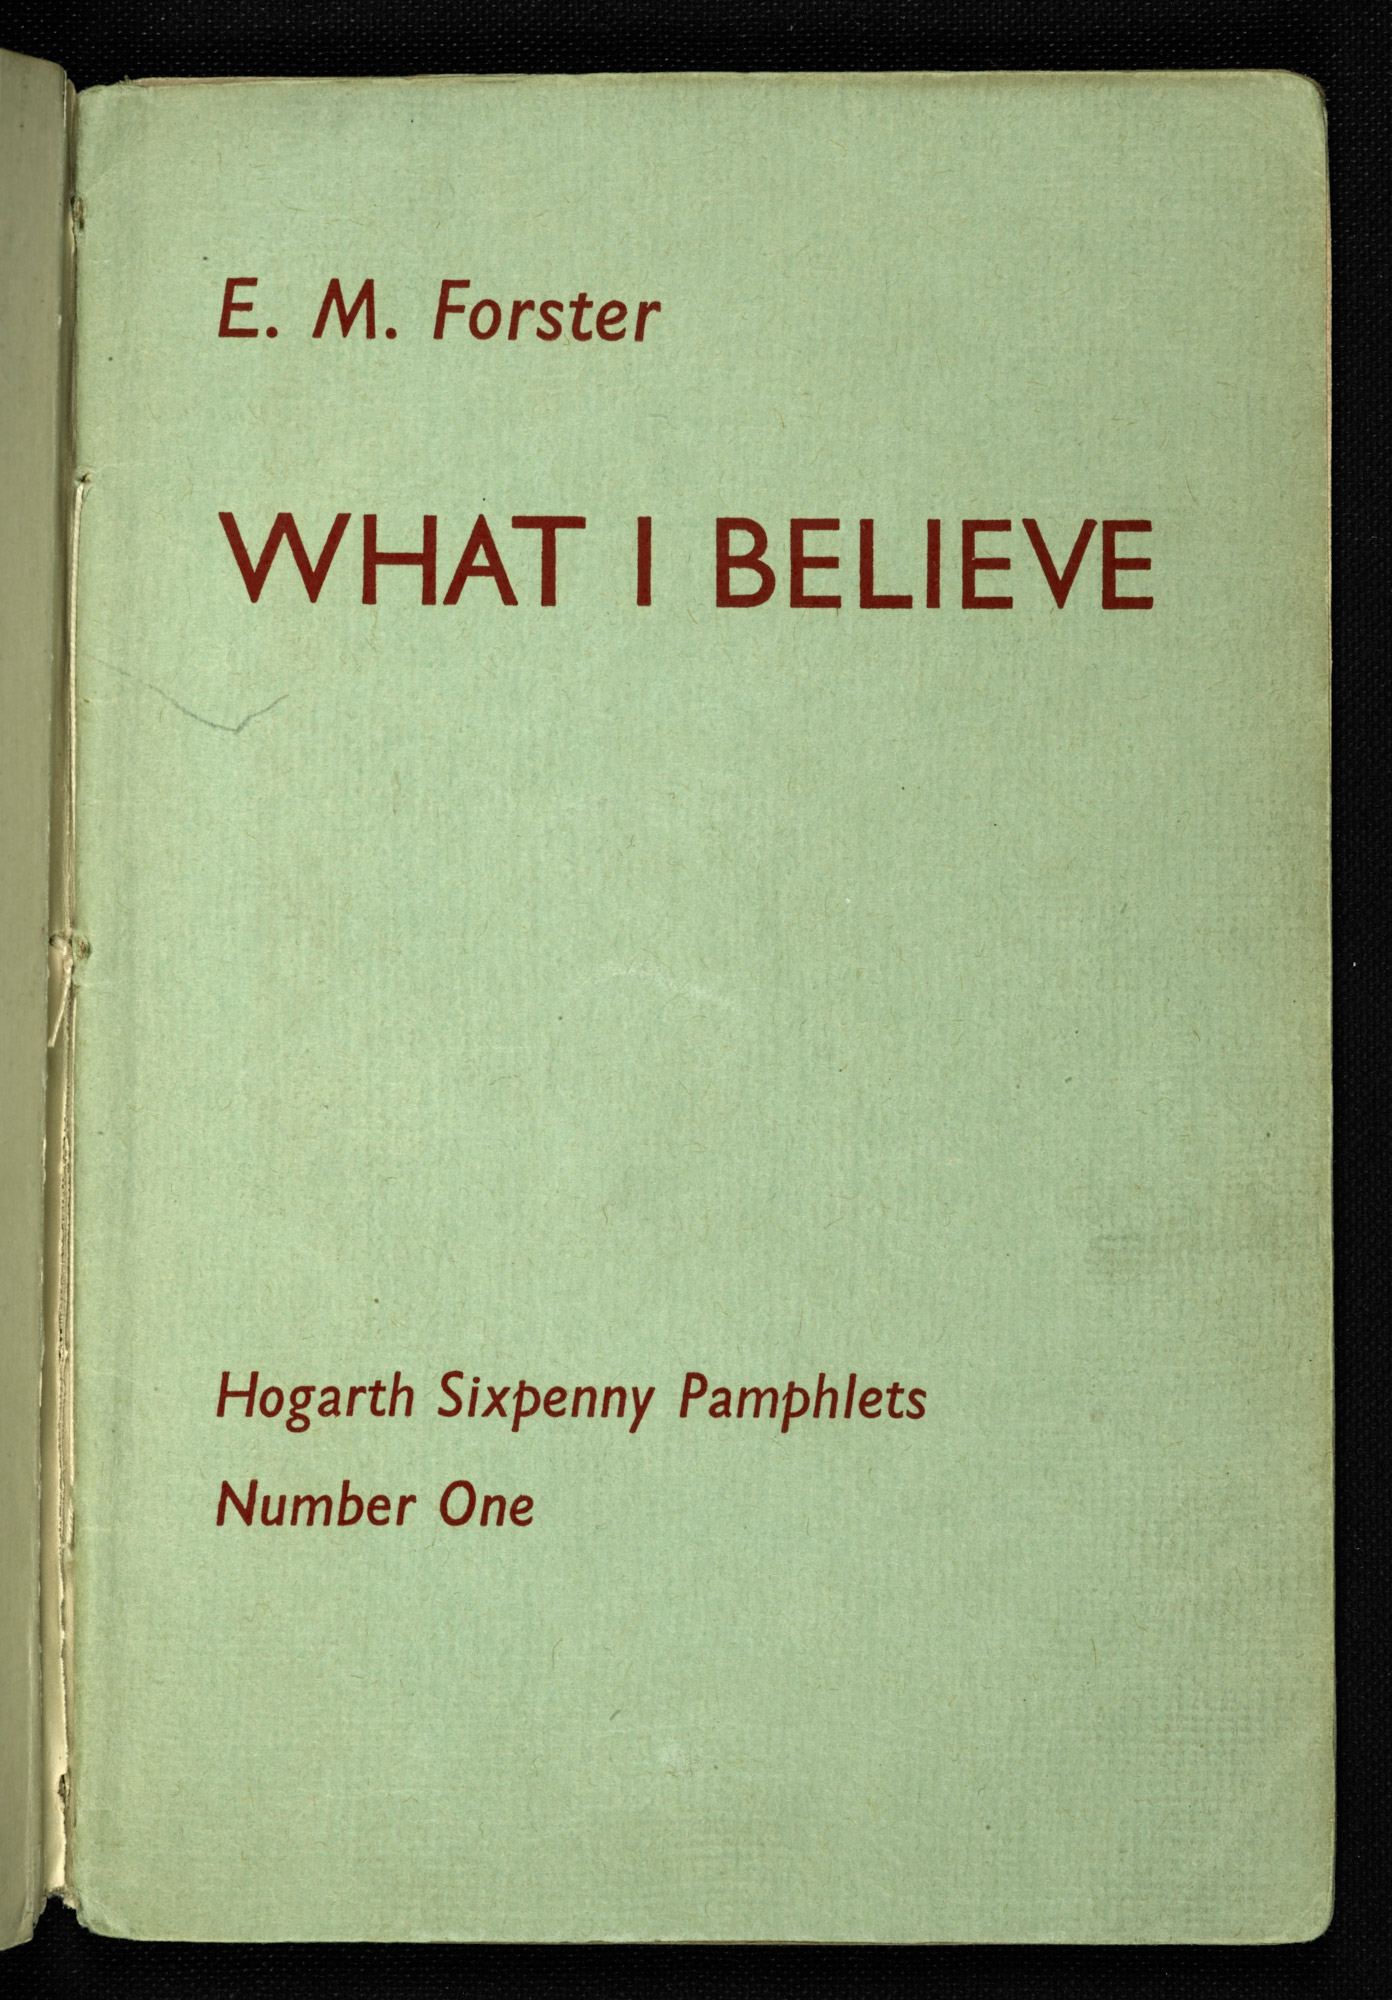 what-I-believe-by-wp_13532_1_front_cover